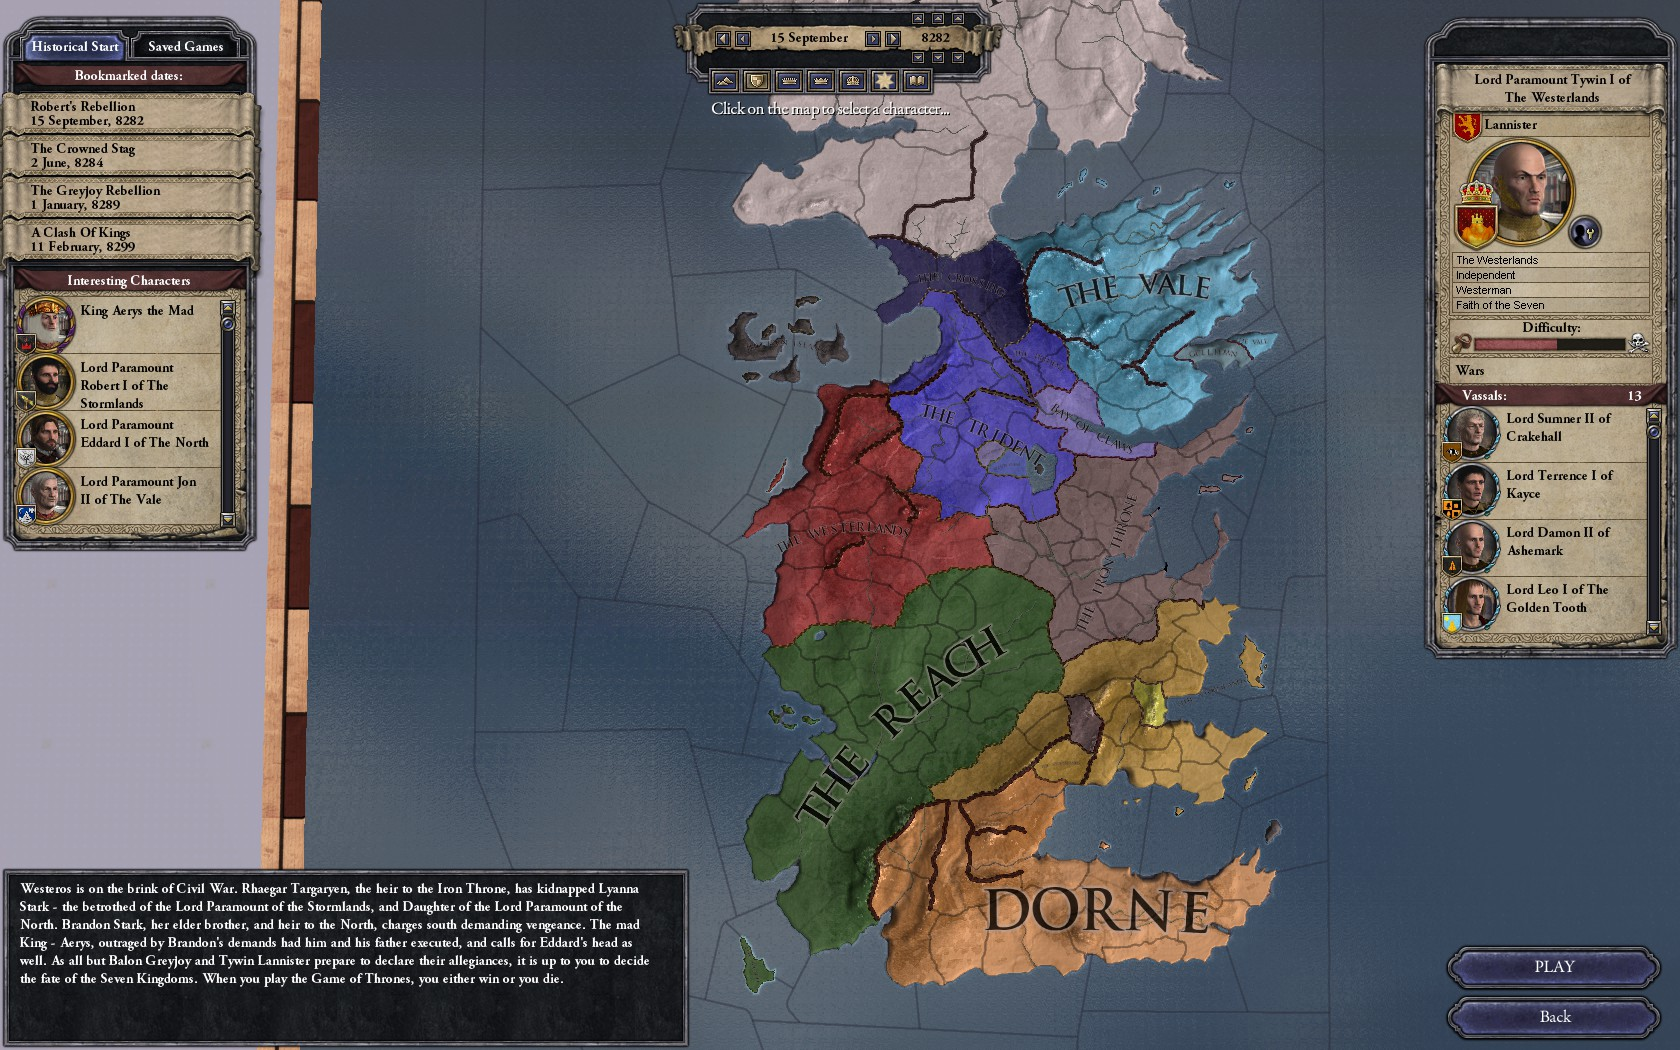 The Seven Kingdoms Image Crusader Kings 2 A Game Of